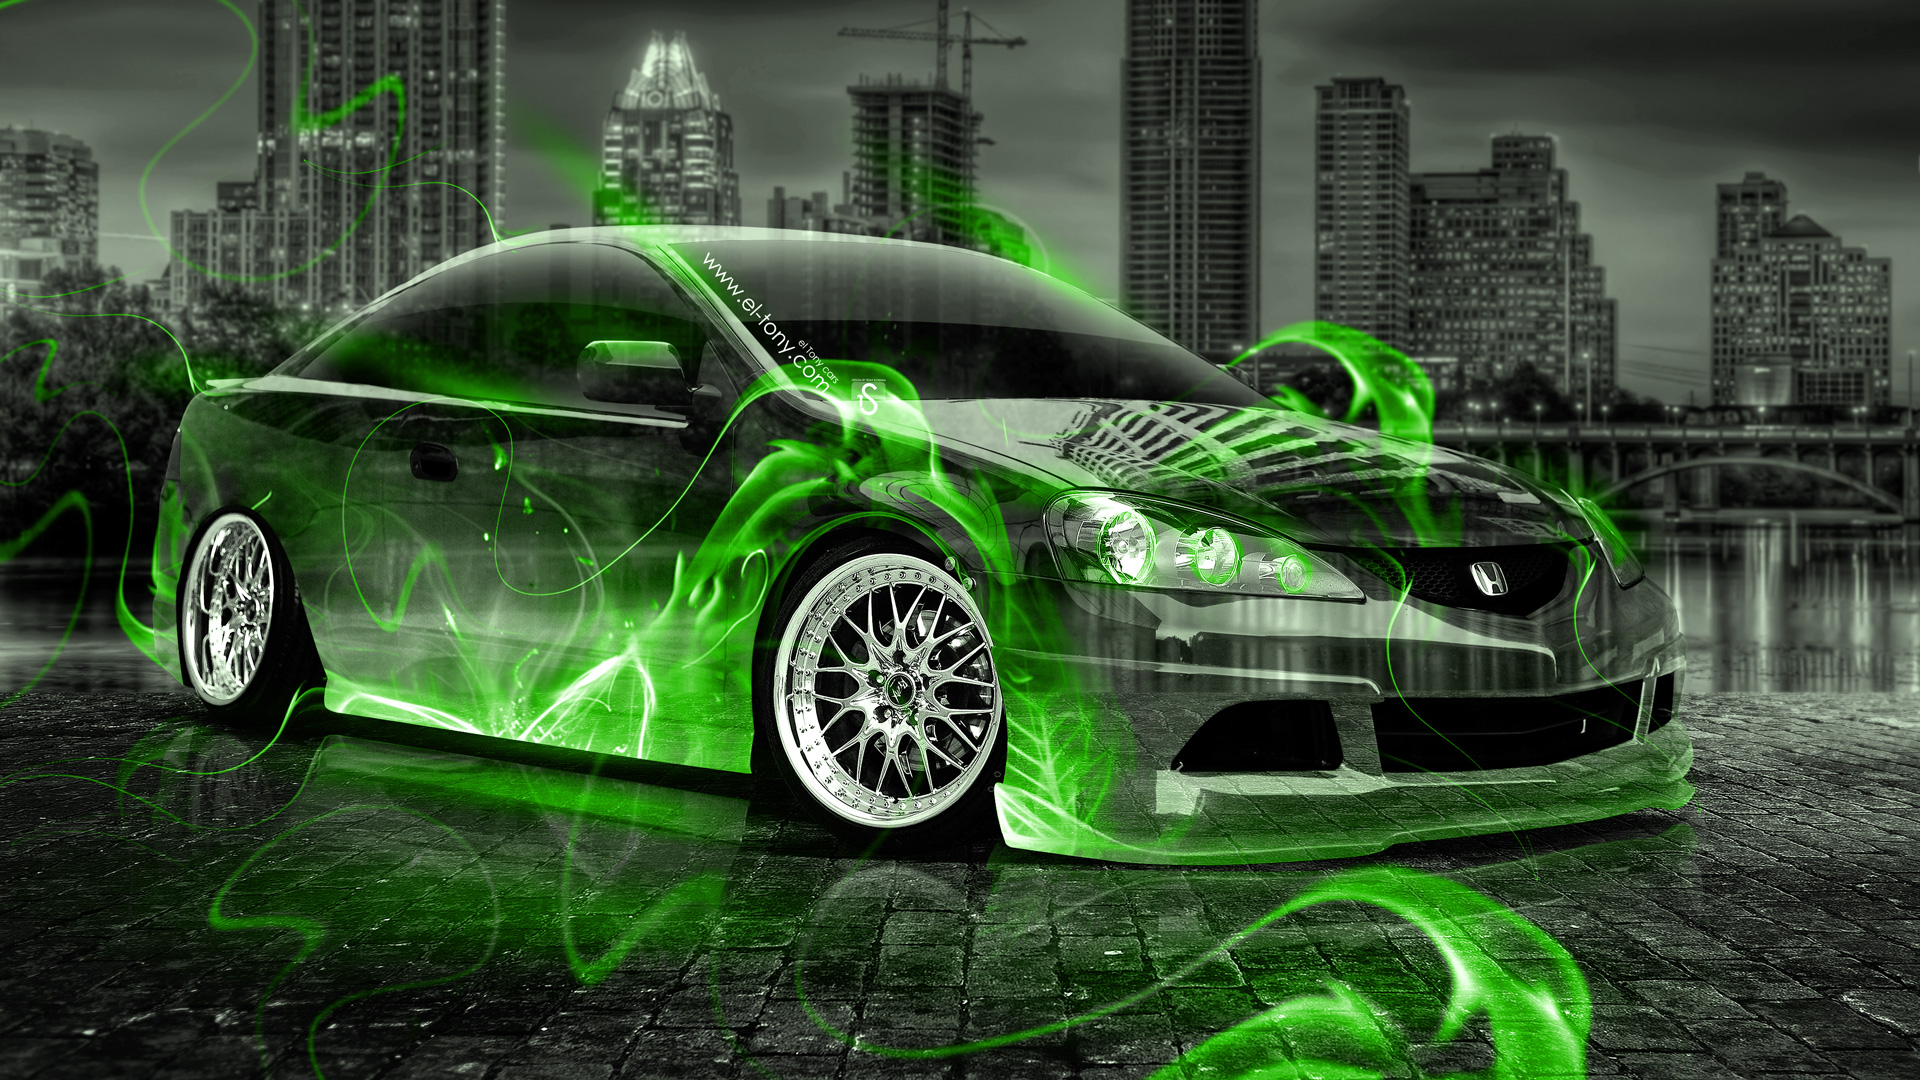 Marvelous Honda Integra JDM Crystal Green Fire City Car